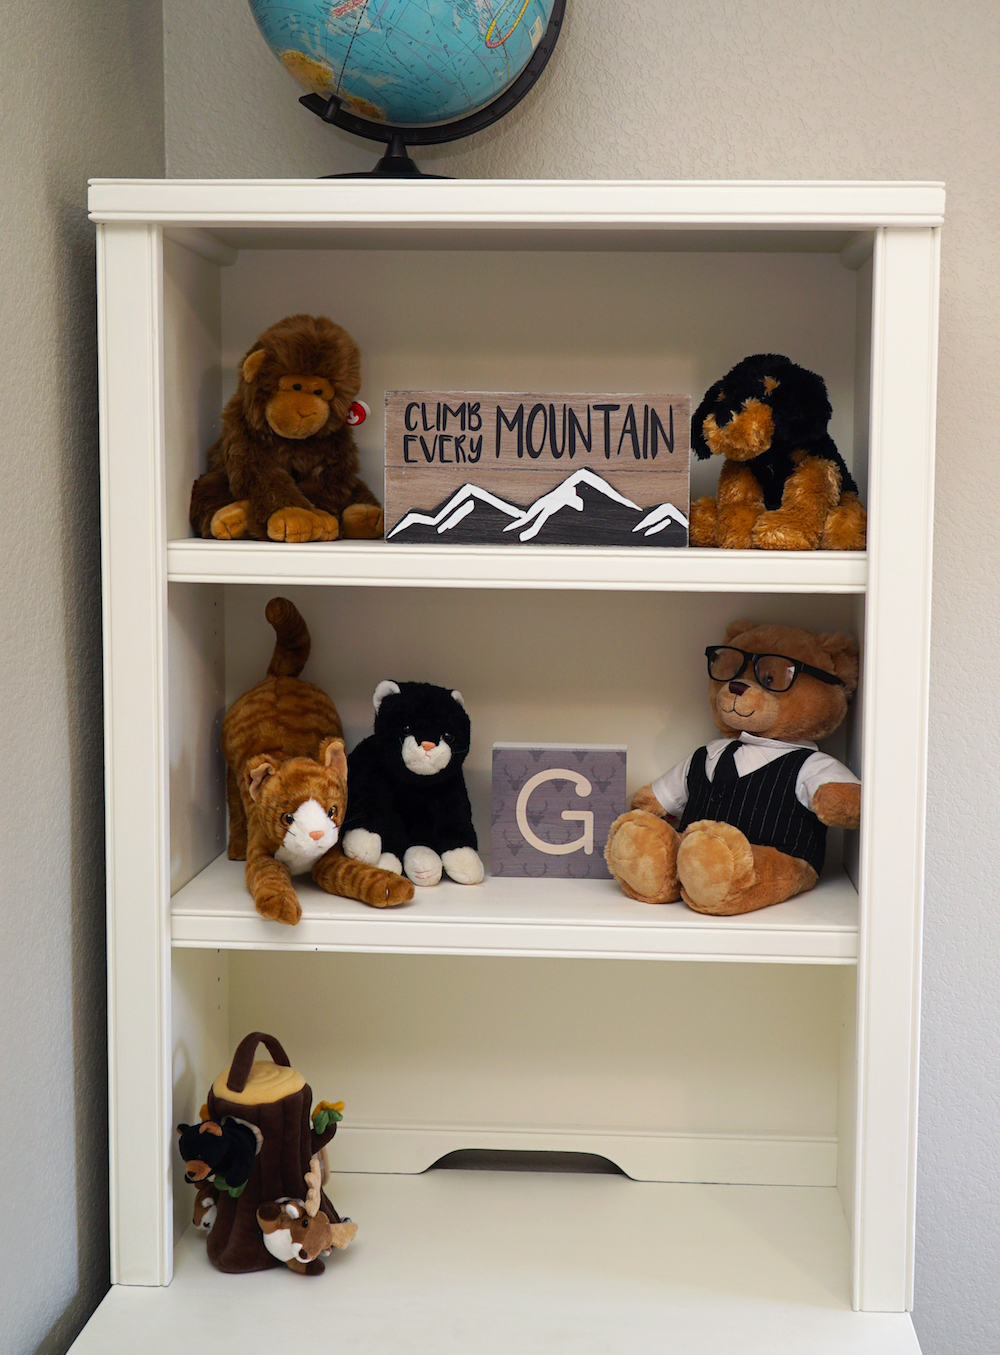 Adventure Nursery - Hutch with Stuffed Animals